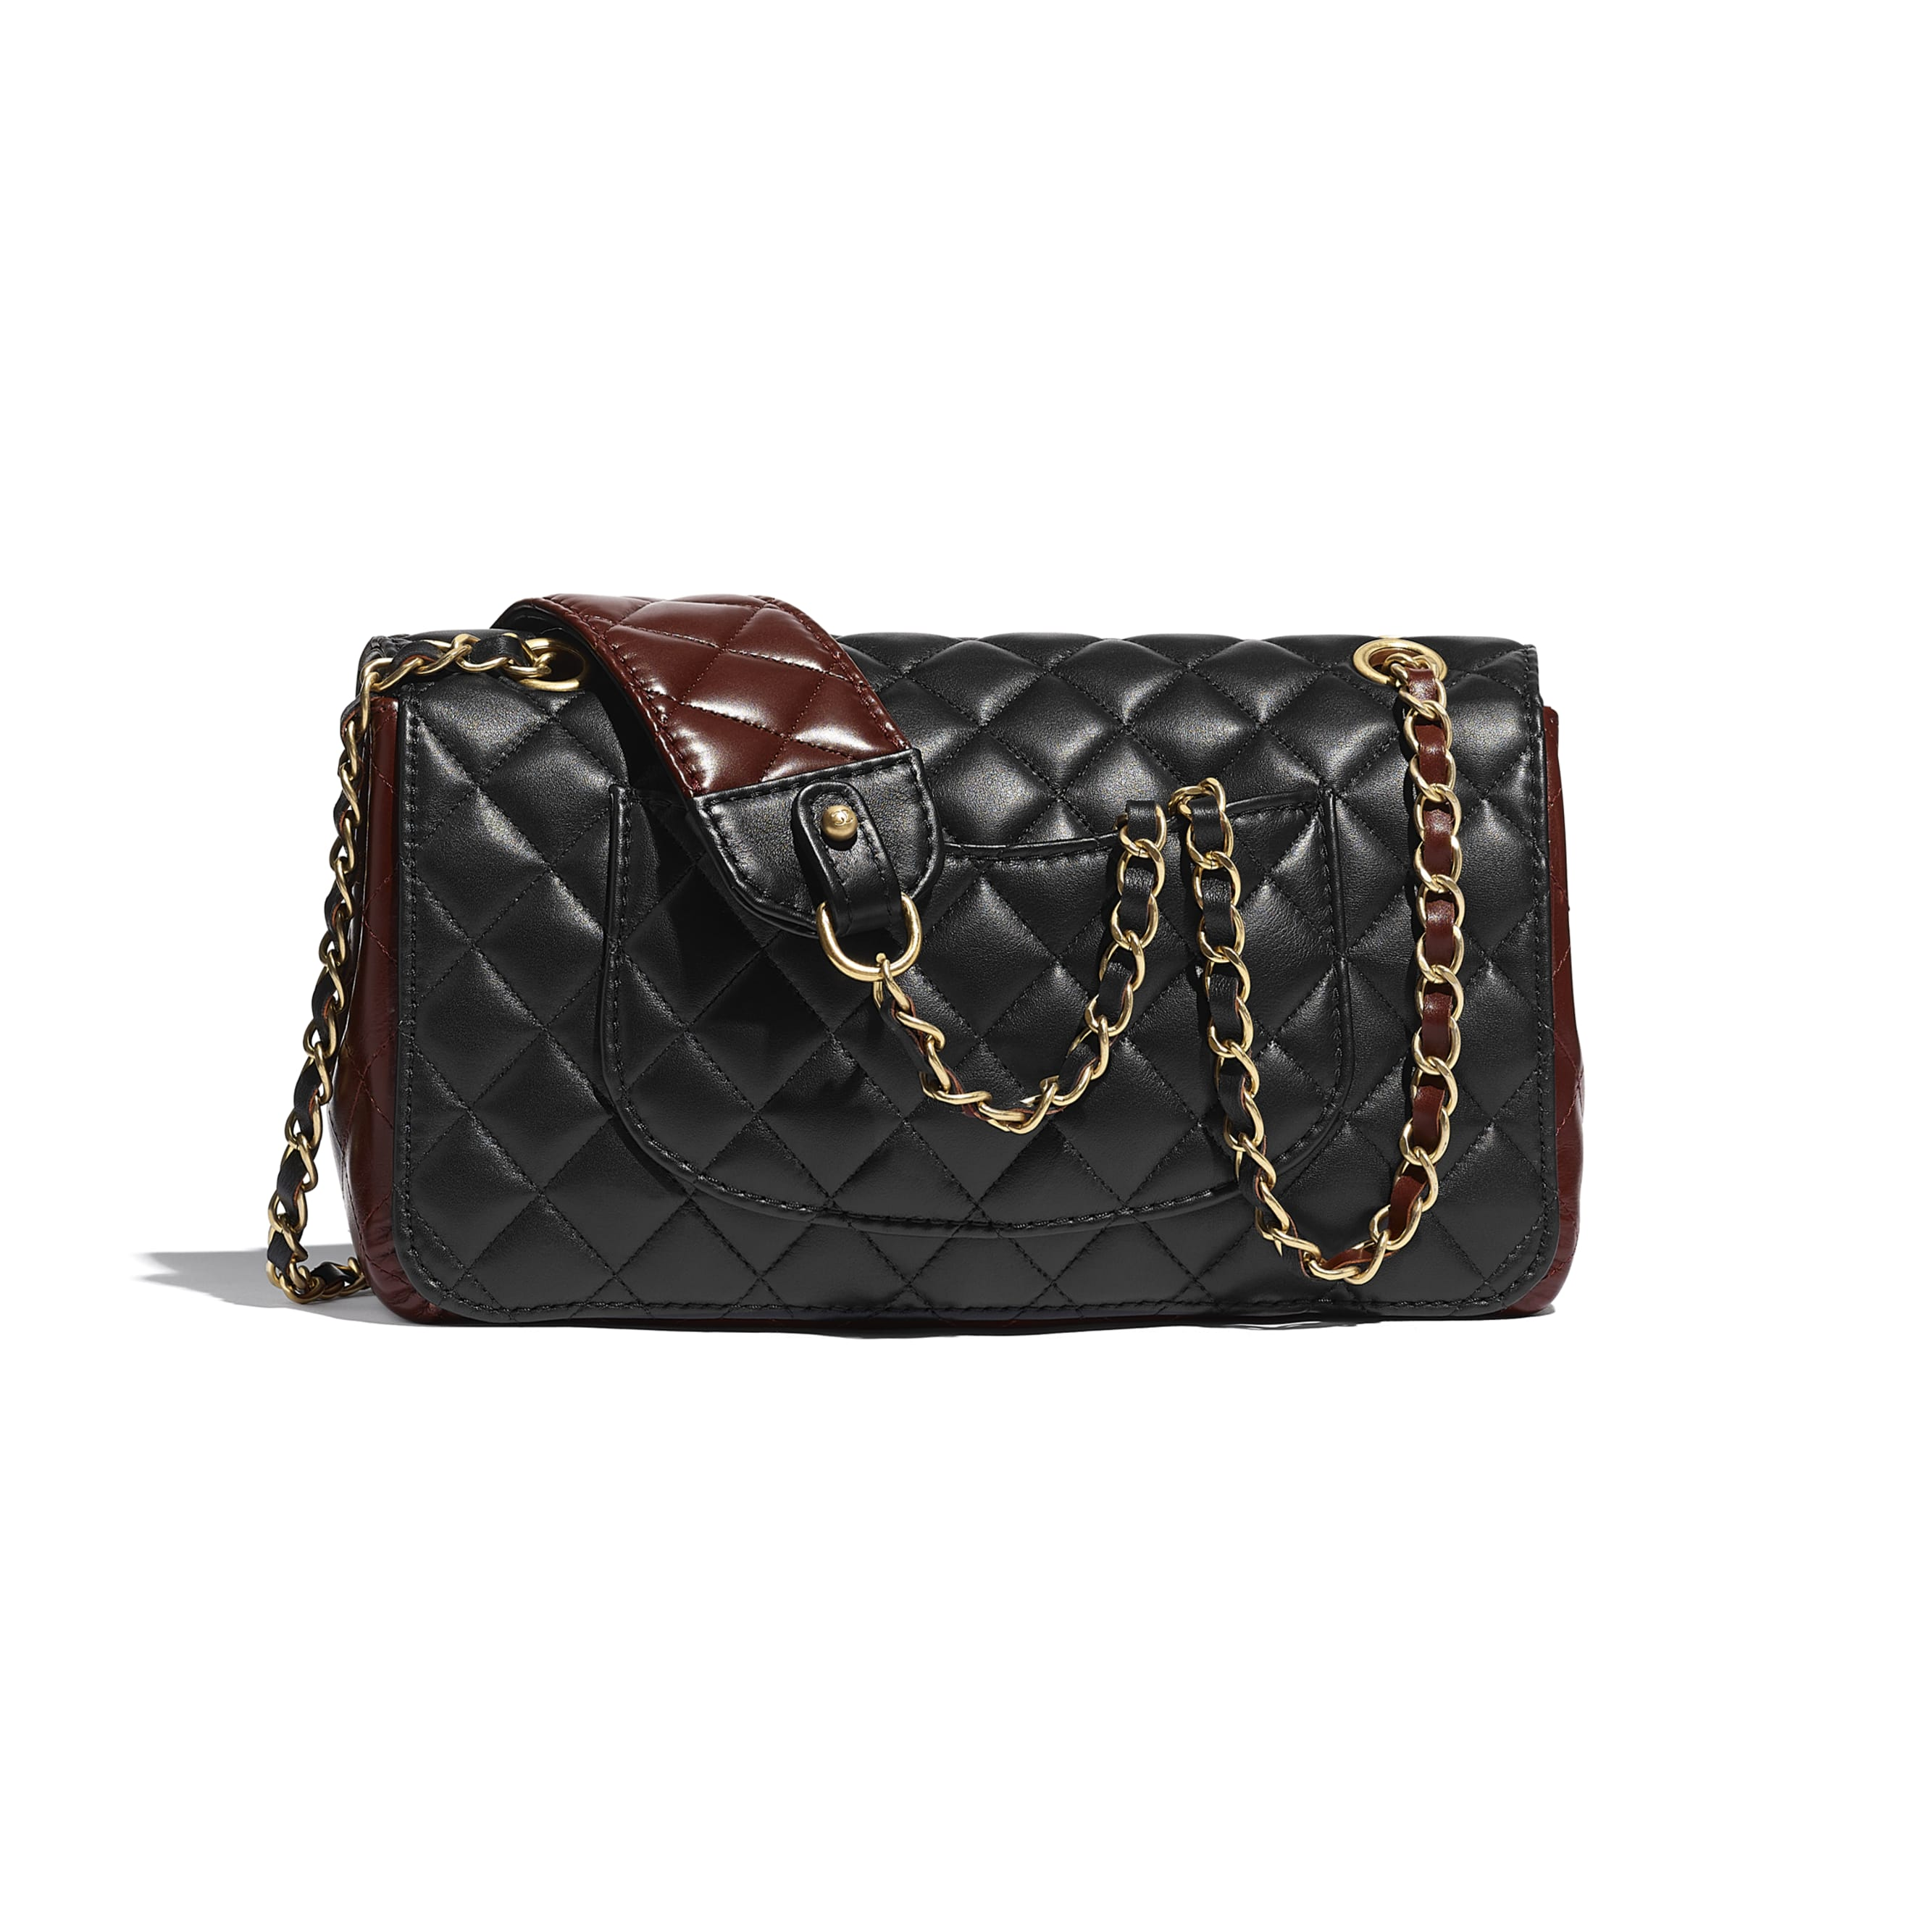 Flap Bag - Black & Brown - Calfskin & Gold-Tone Metal - CHANEL - Alternative view - see standard sized version